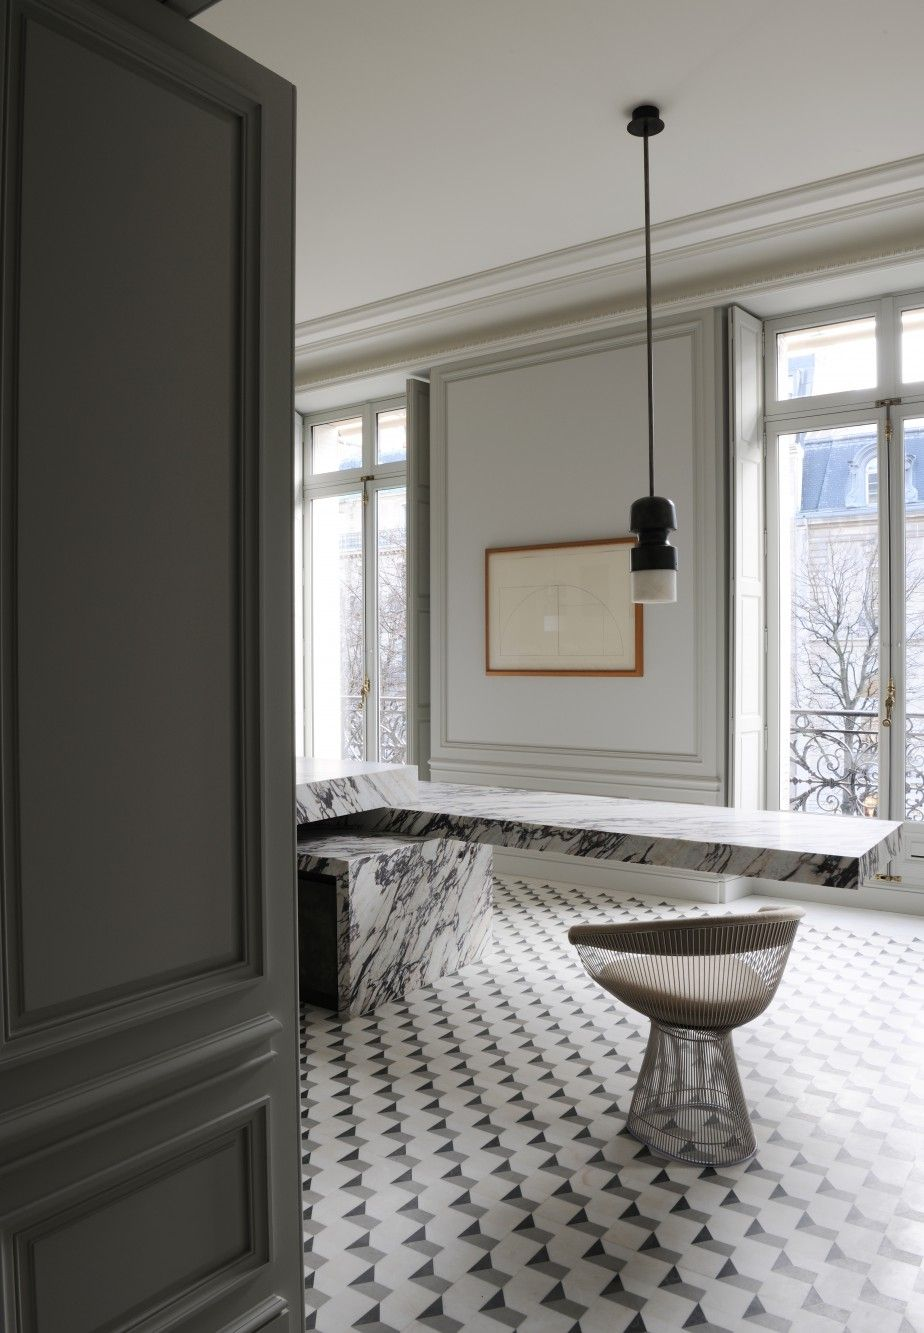 Joseph dirand architecture avenue montaigne paris - Maison rustique dan joseph architects ...